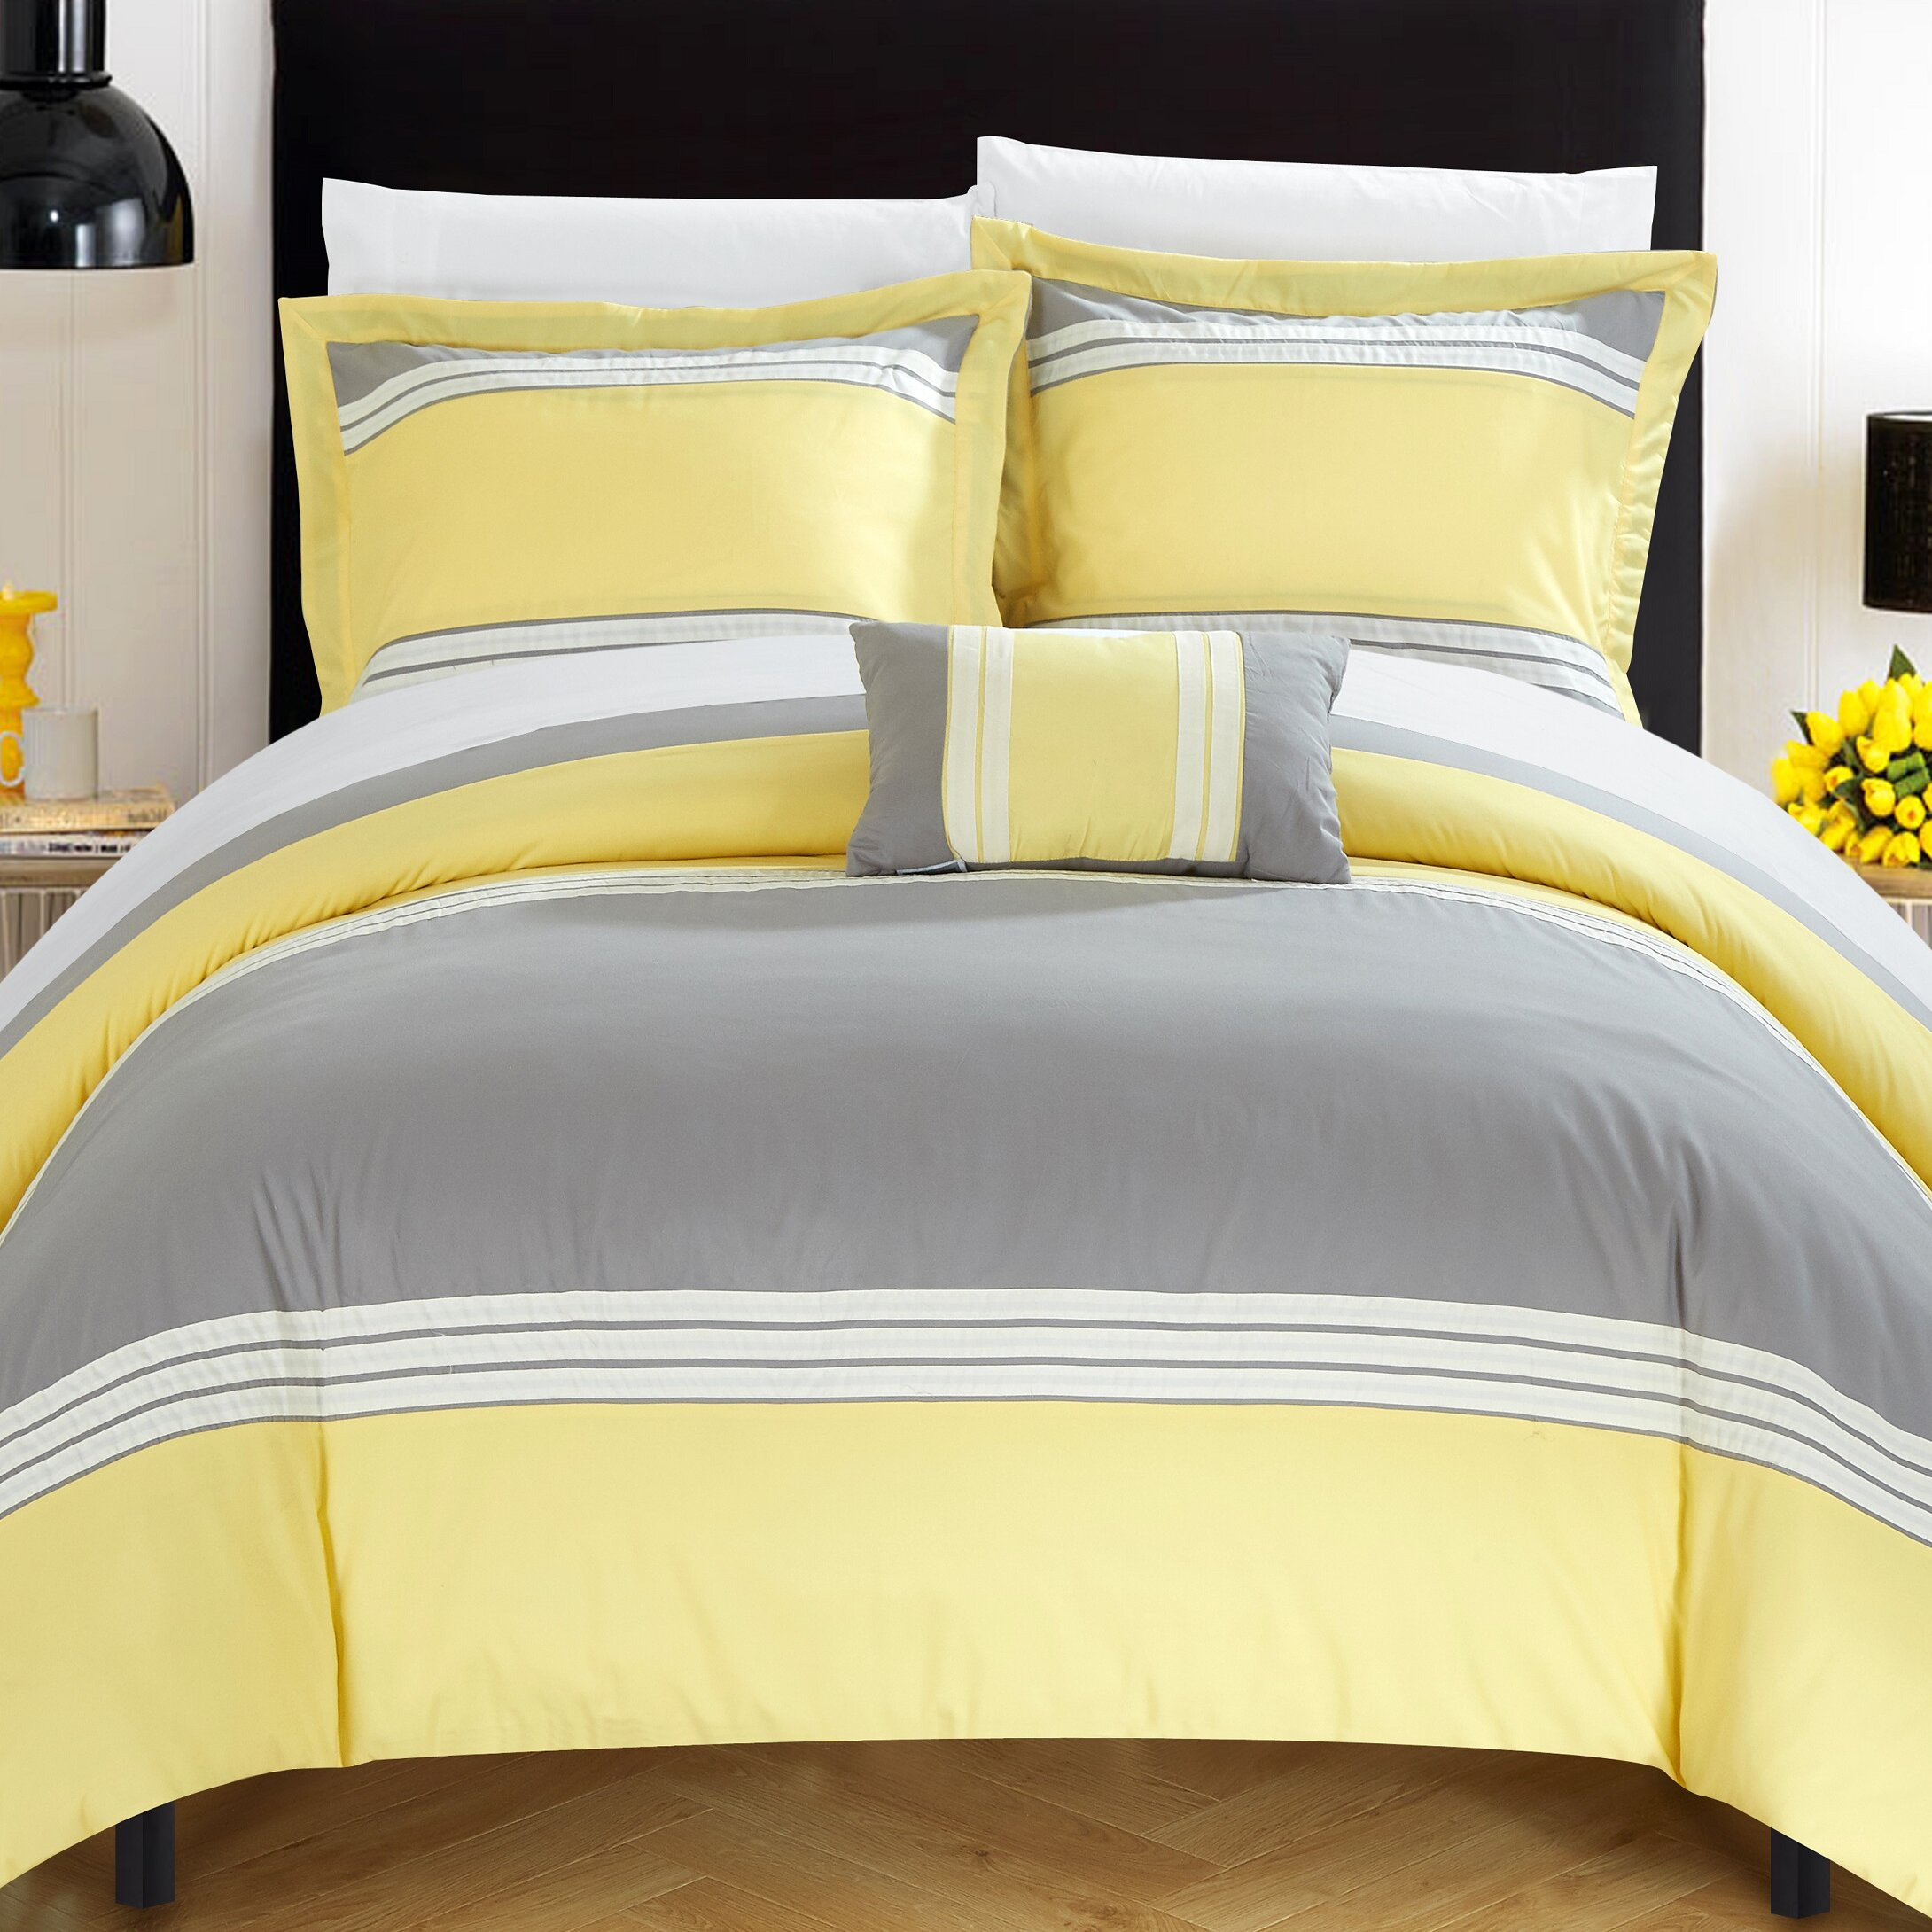 high bedding bedroom sets bed collection quality of forters comforter pictures new black hotel